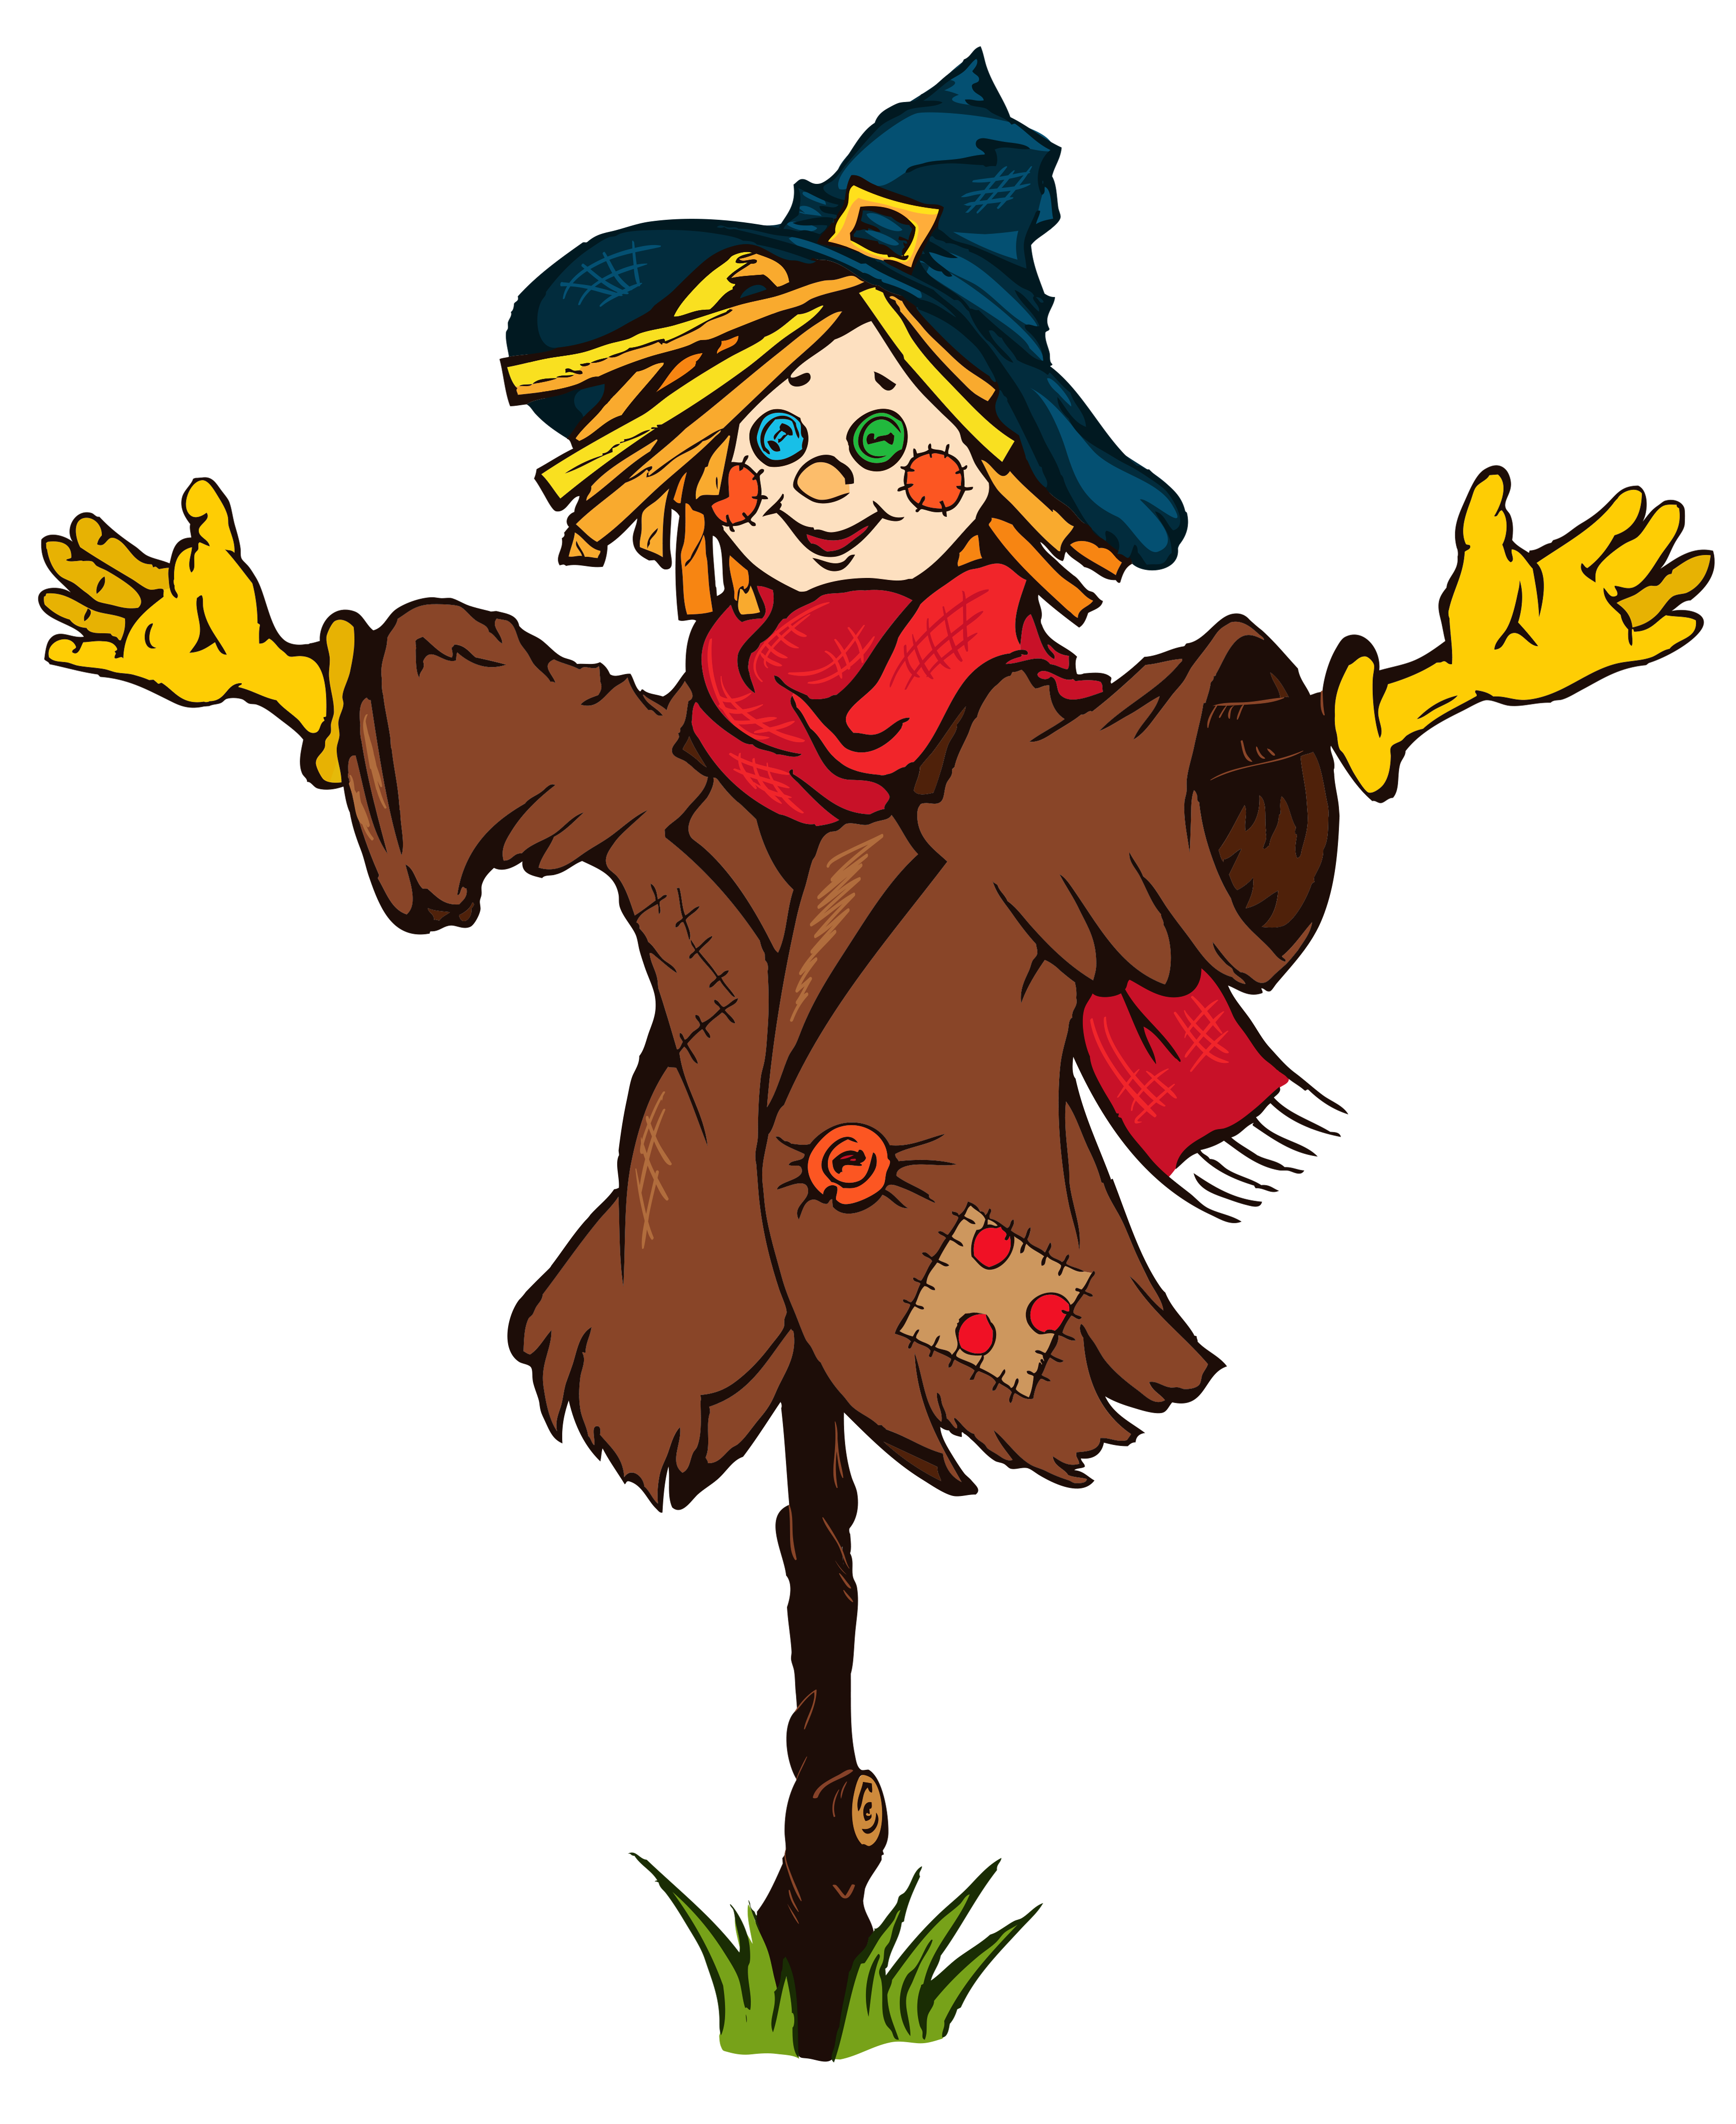 Transparent picture gallery yopriceville. Scarecrow clipart png picture royalty free